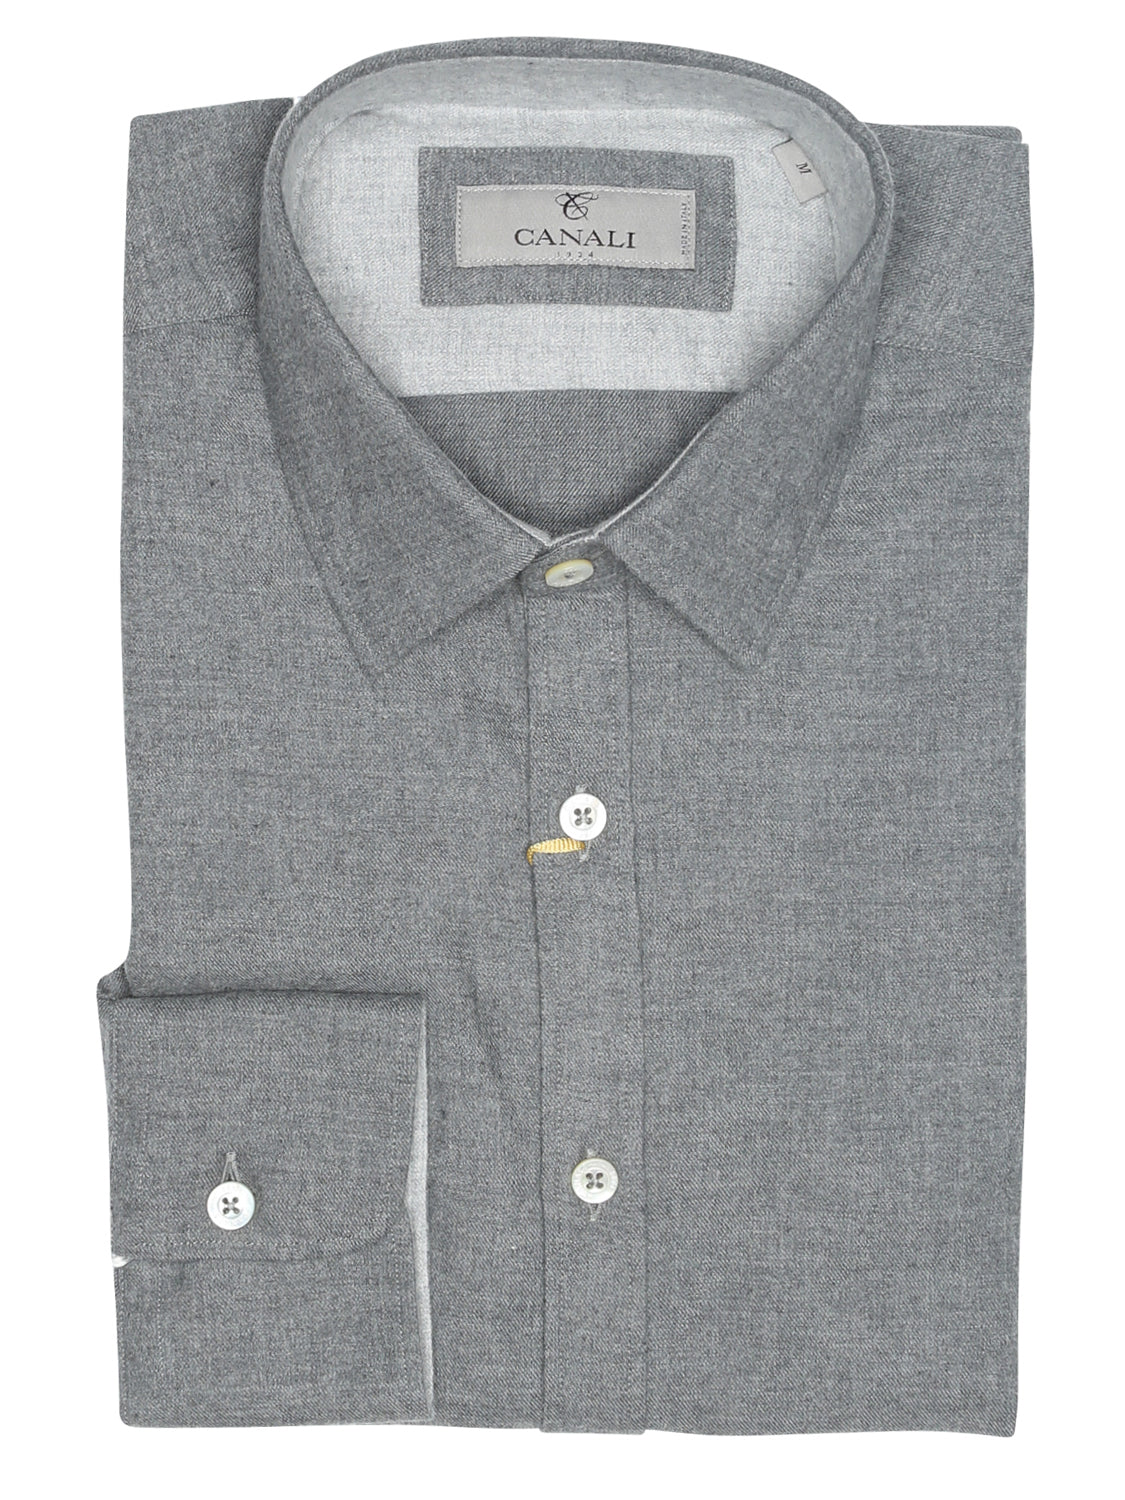 Canali Modern Fit Casual Shirt (Grey)